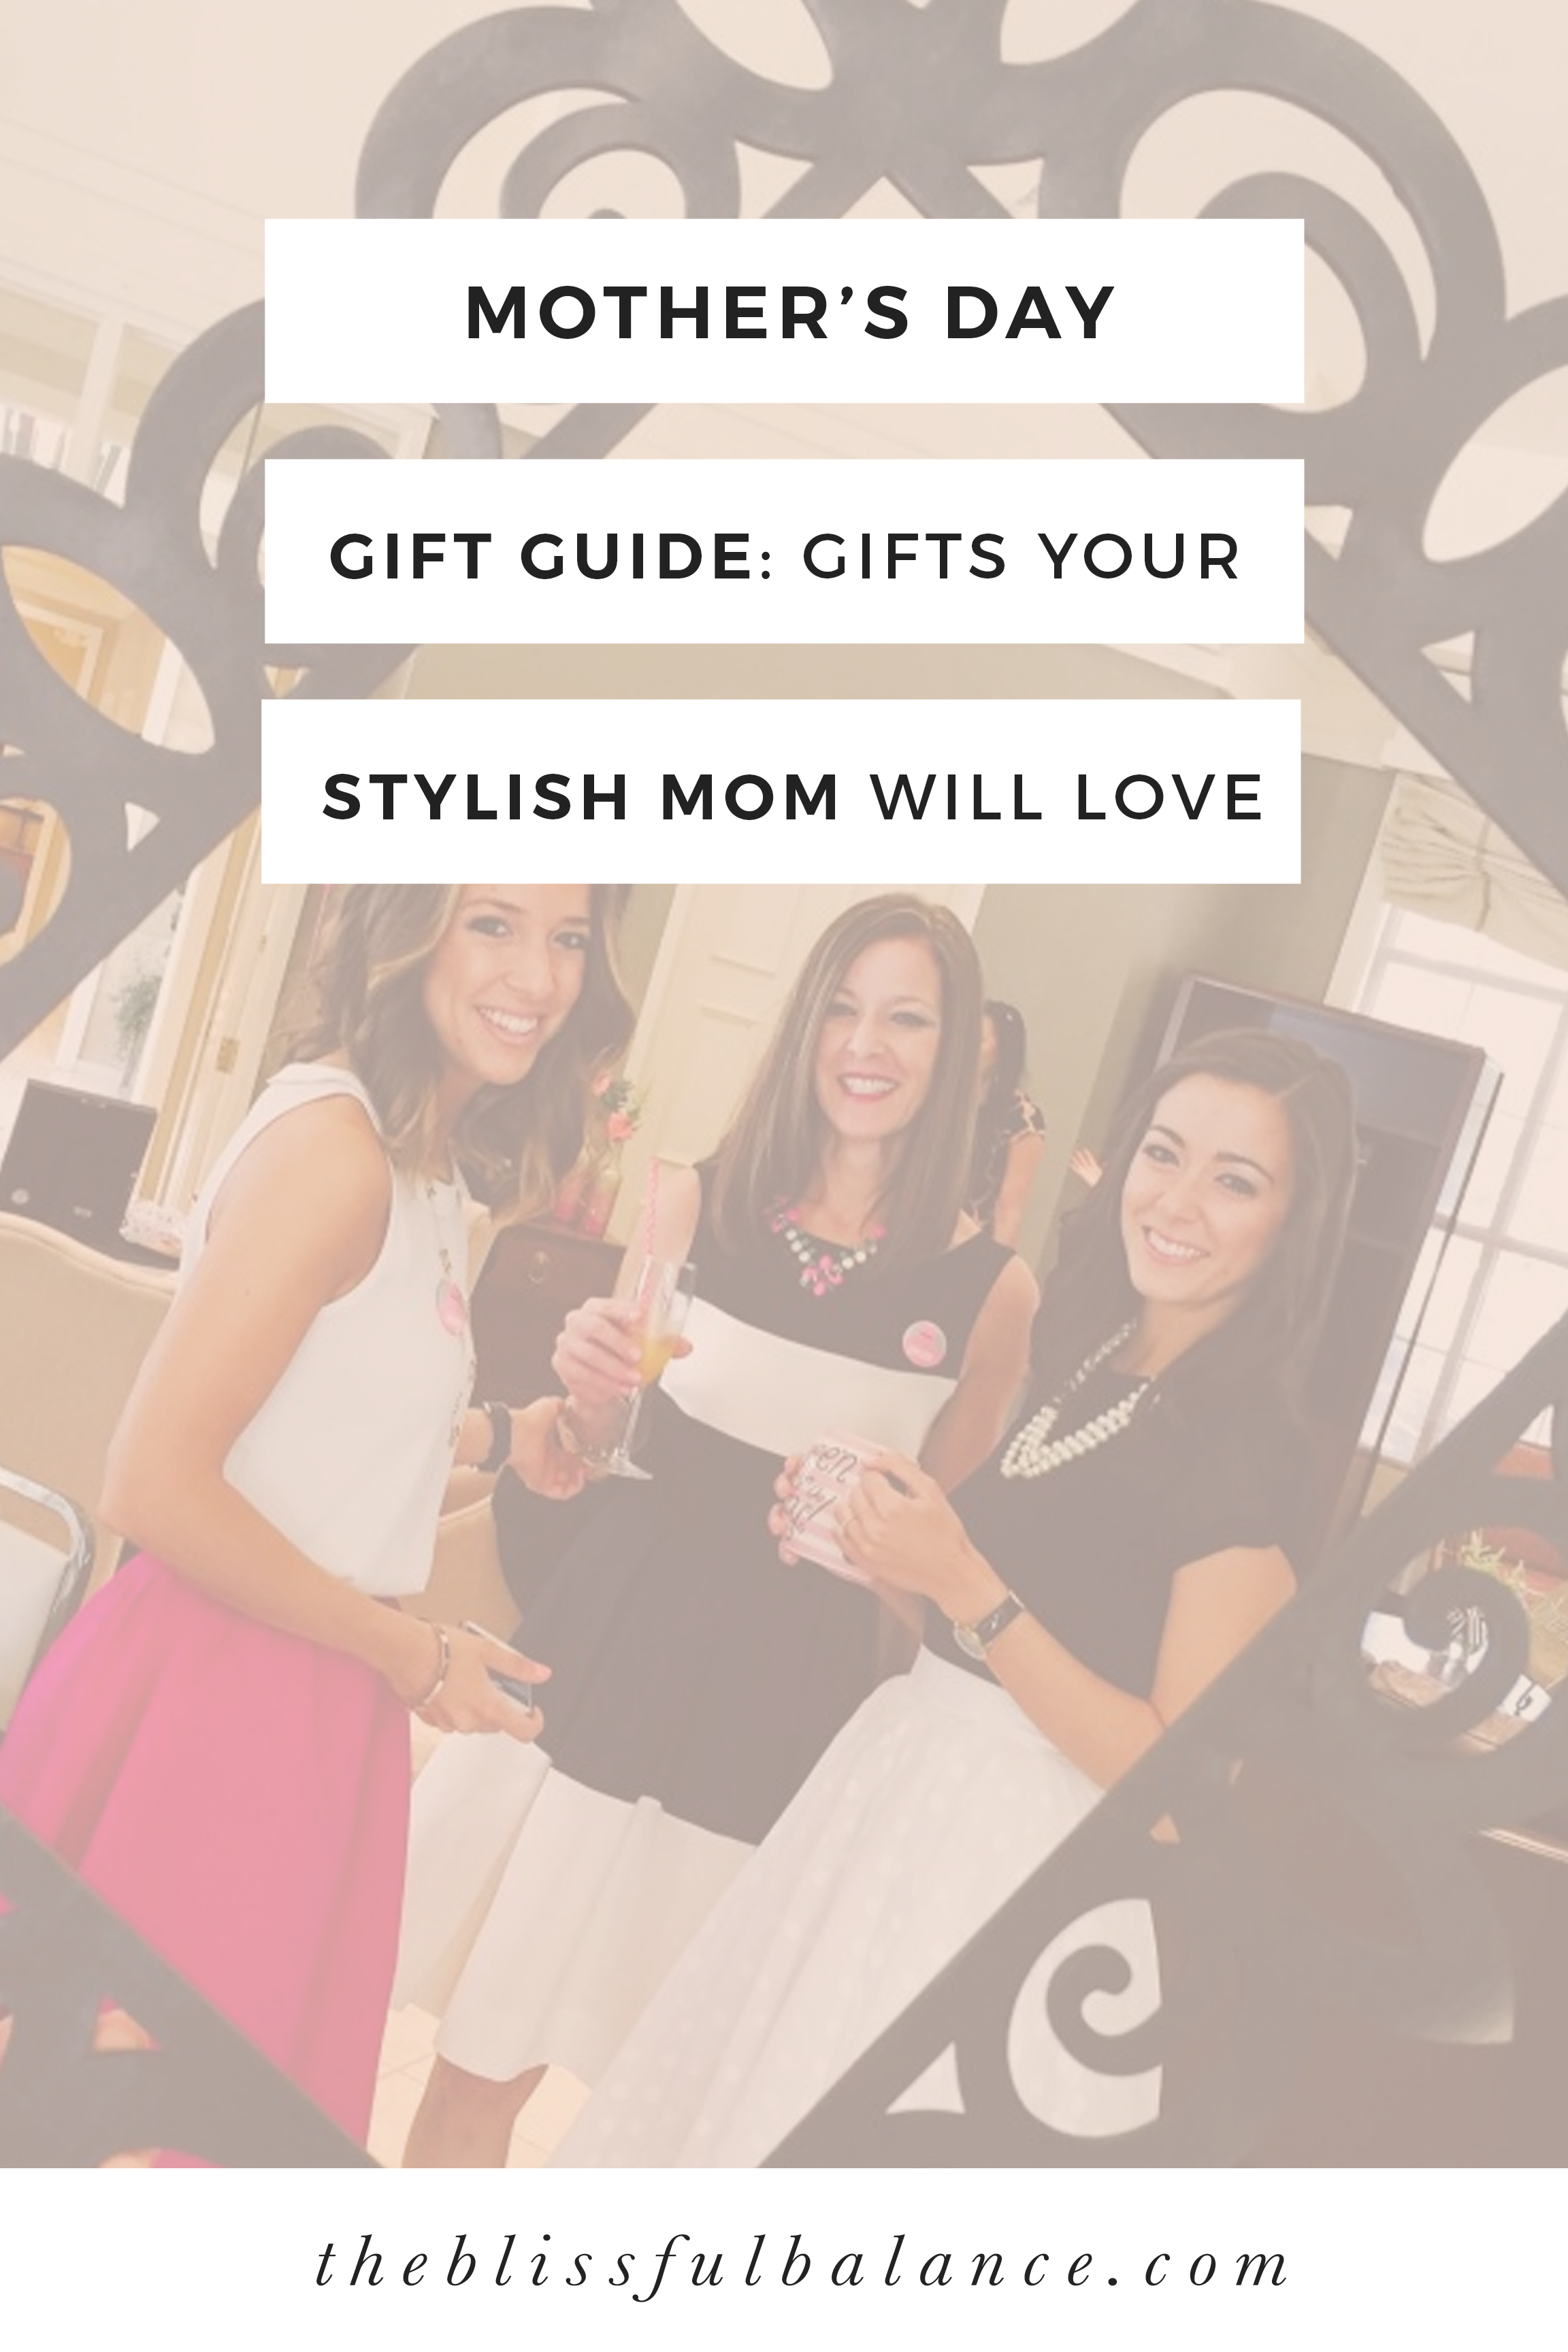 Mother's Day Gift Guide: Gifts Your Stylish Mom Will Love